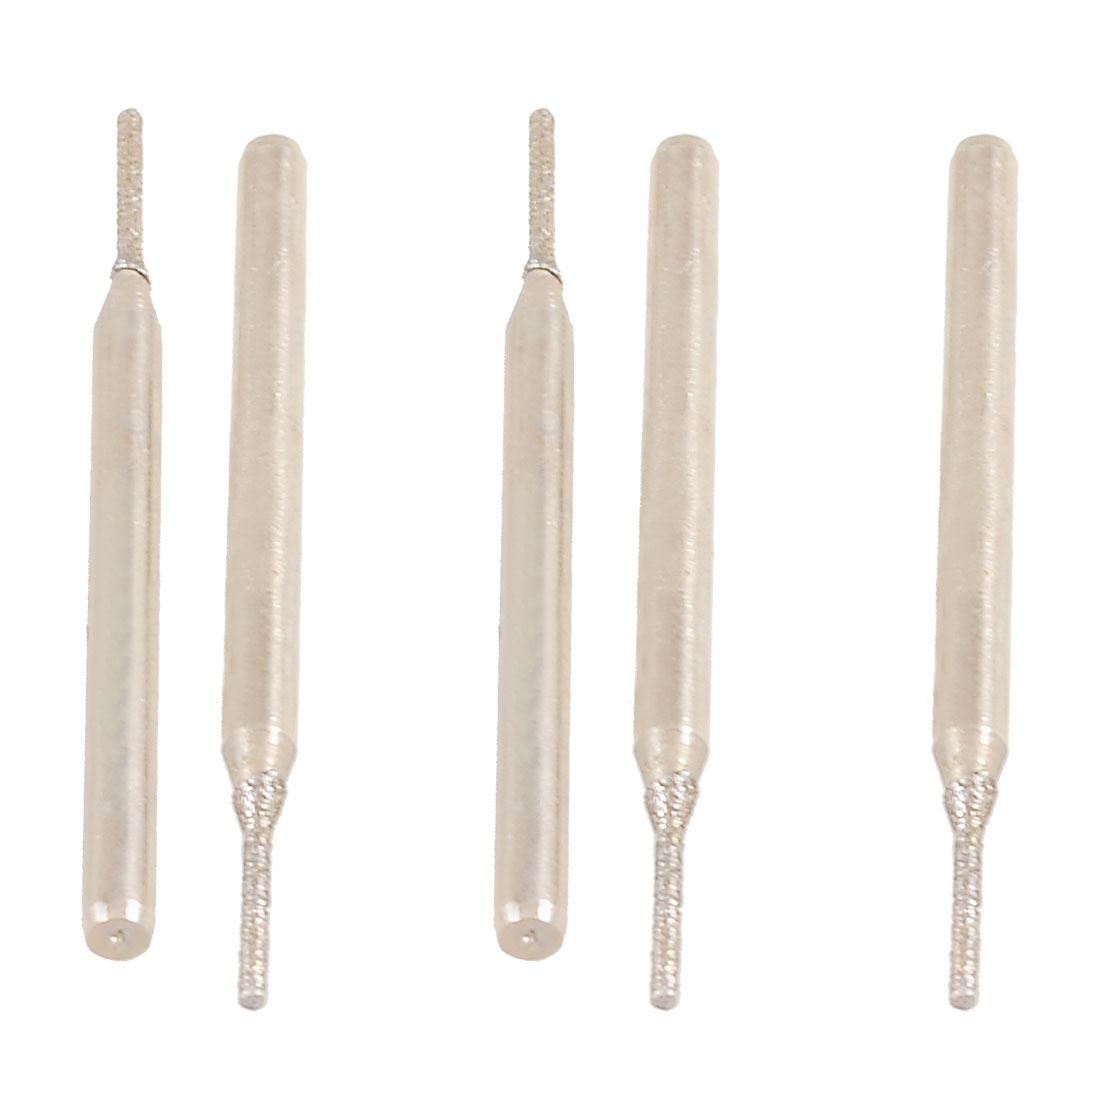 5 Pcs 3mm Shank 1mm Dia Cylindrical Tip Diamond Mounted Points